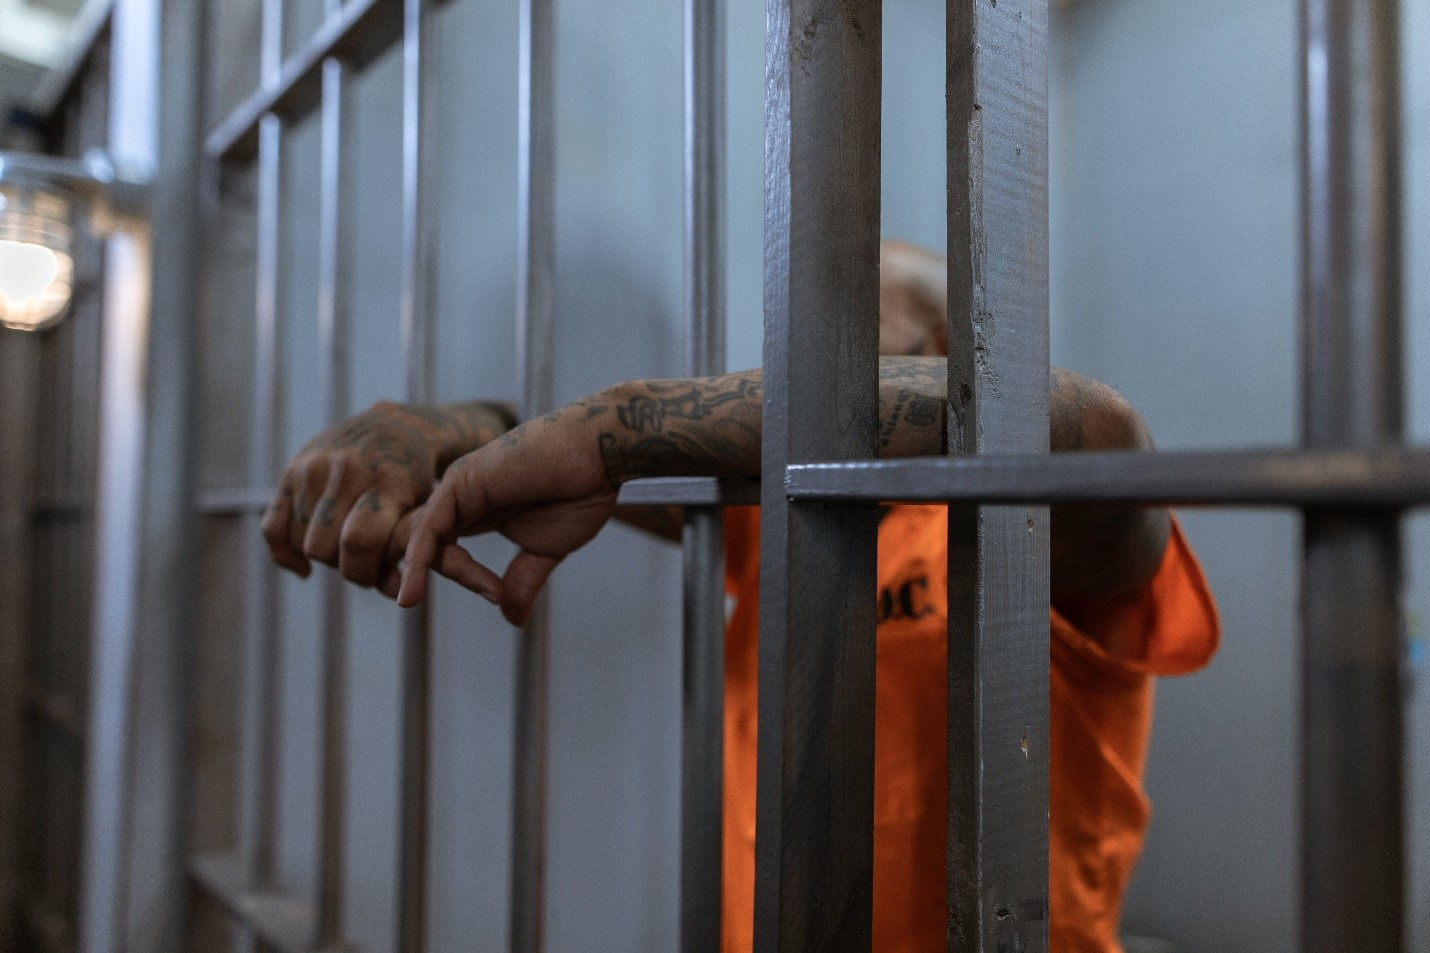 Man in jail waiting to get out